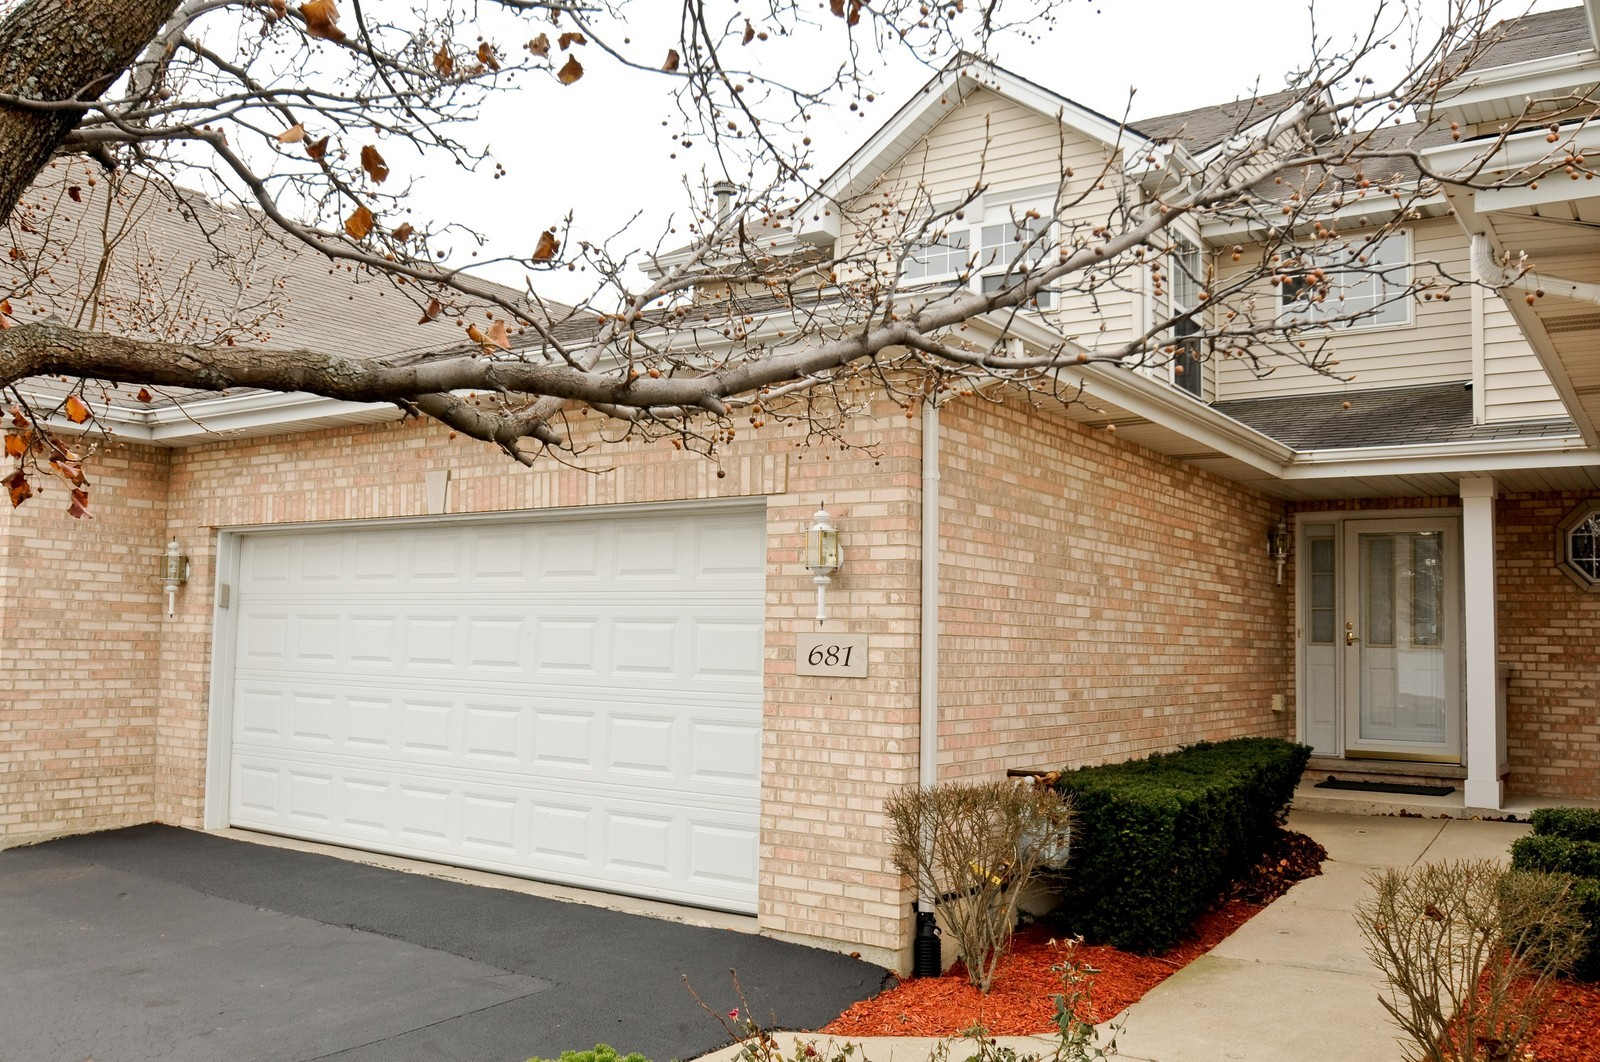 Real Estate Photography - 681 schooner, New Lenox, IL, 60451 - Front View